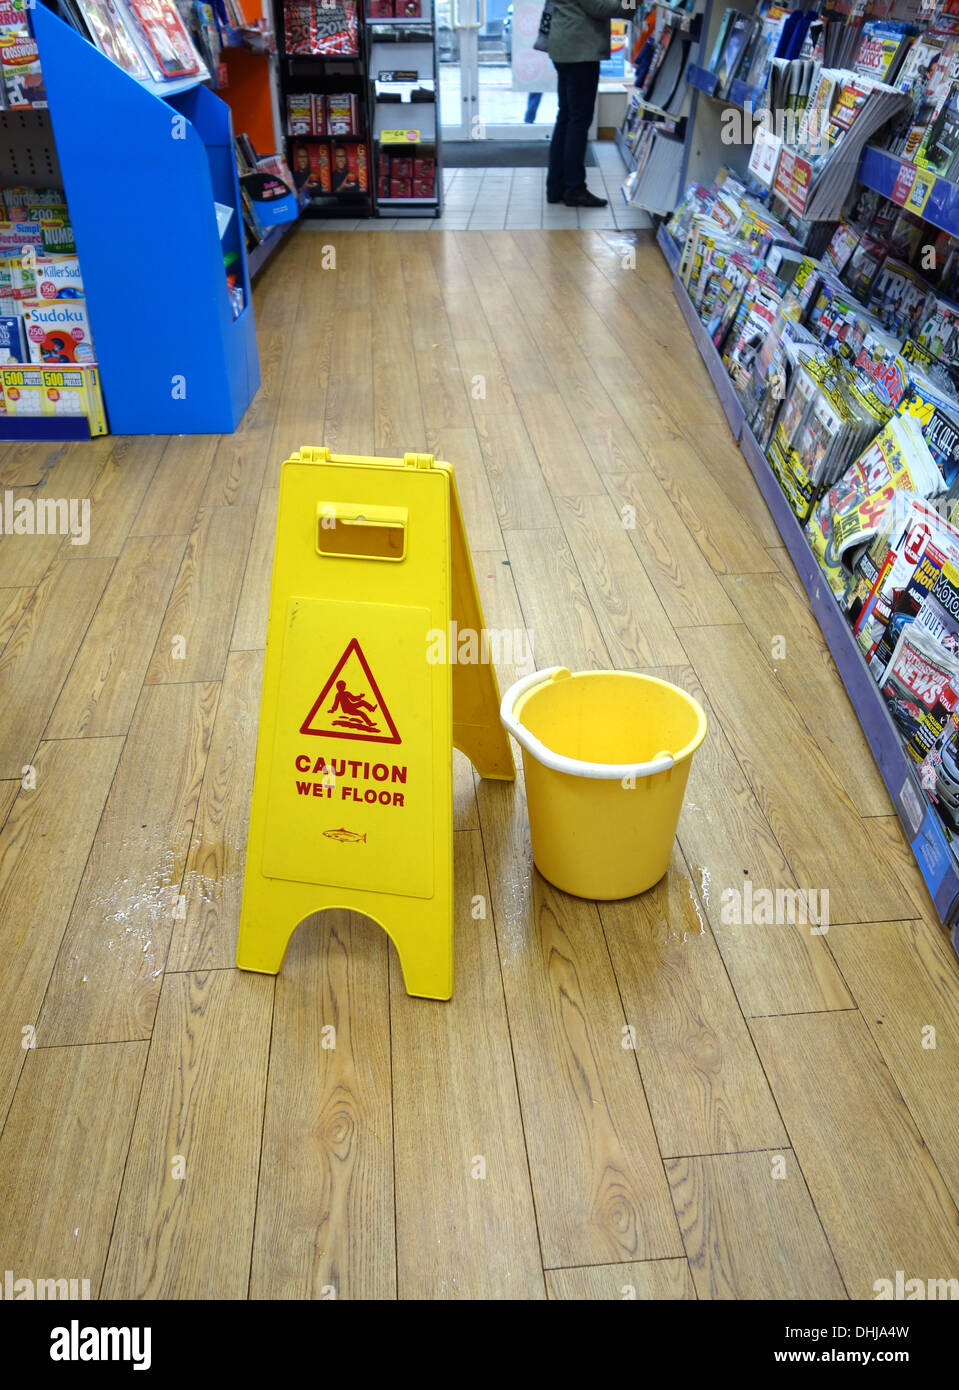 A caution ' wet floor ' sign in a shop - Stock Image